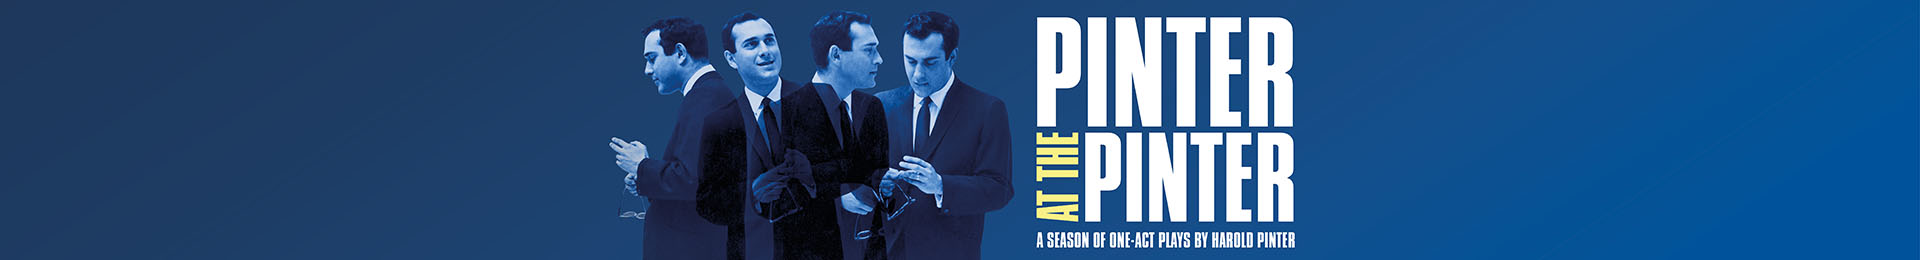 Pinter at the Pinter, The Harold Pinter Season, At The Harold Pinter Theatre, Tickets